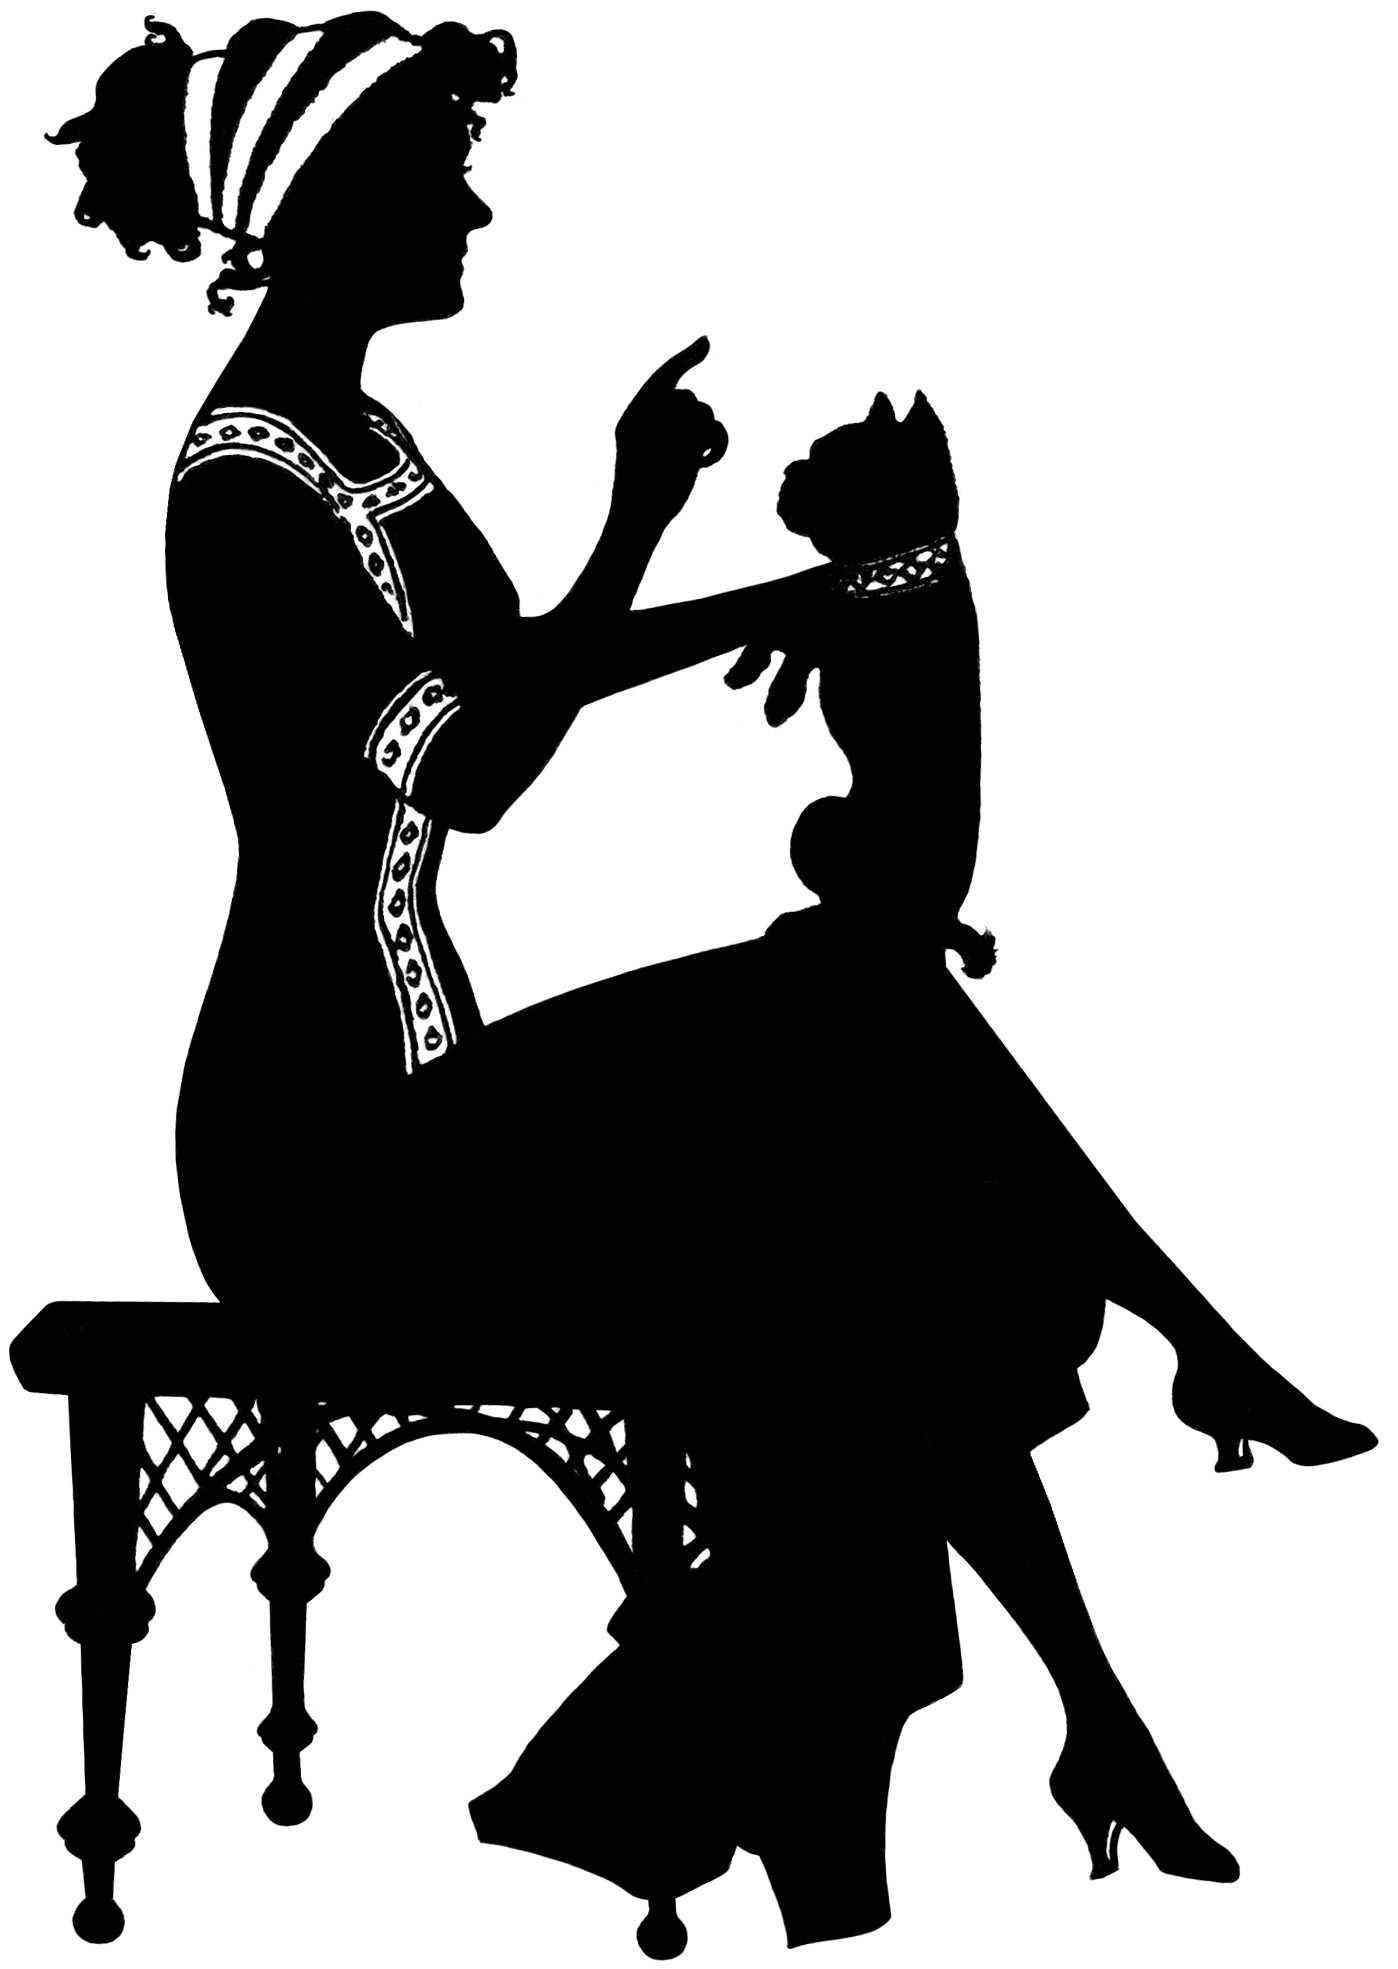 Free vintage image of. Bench clipart silhouette